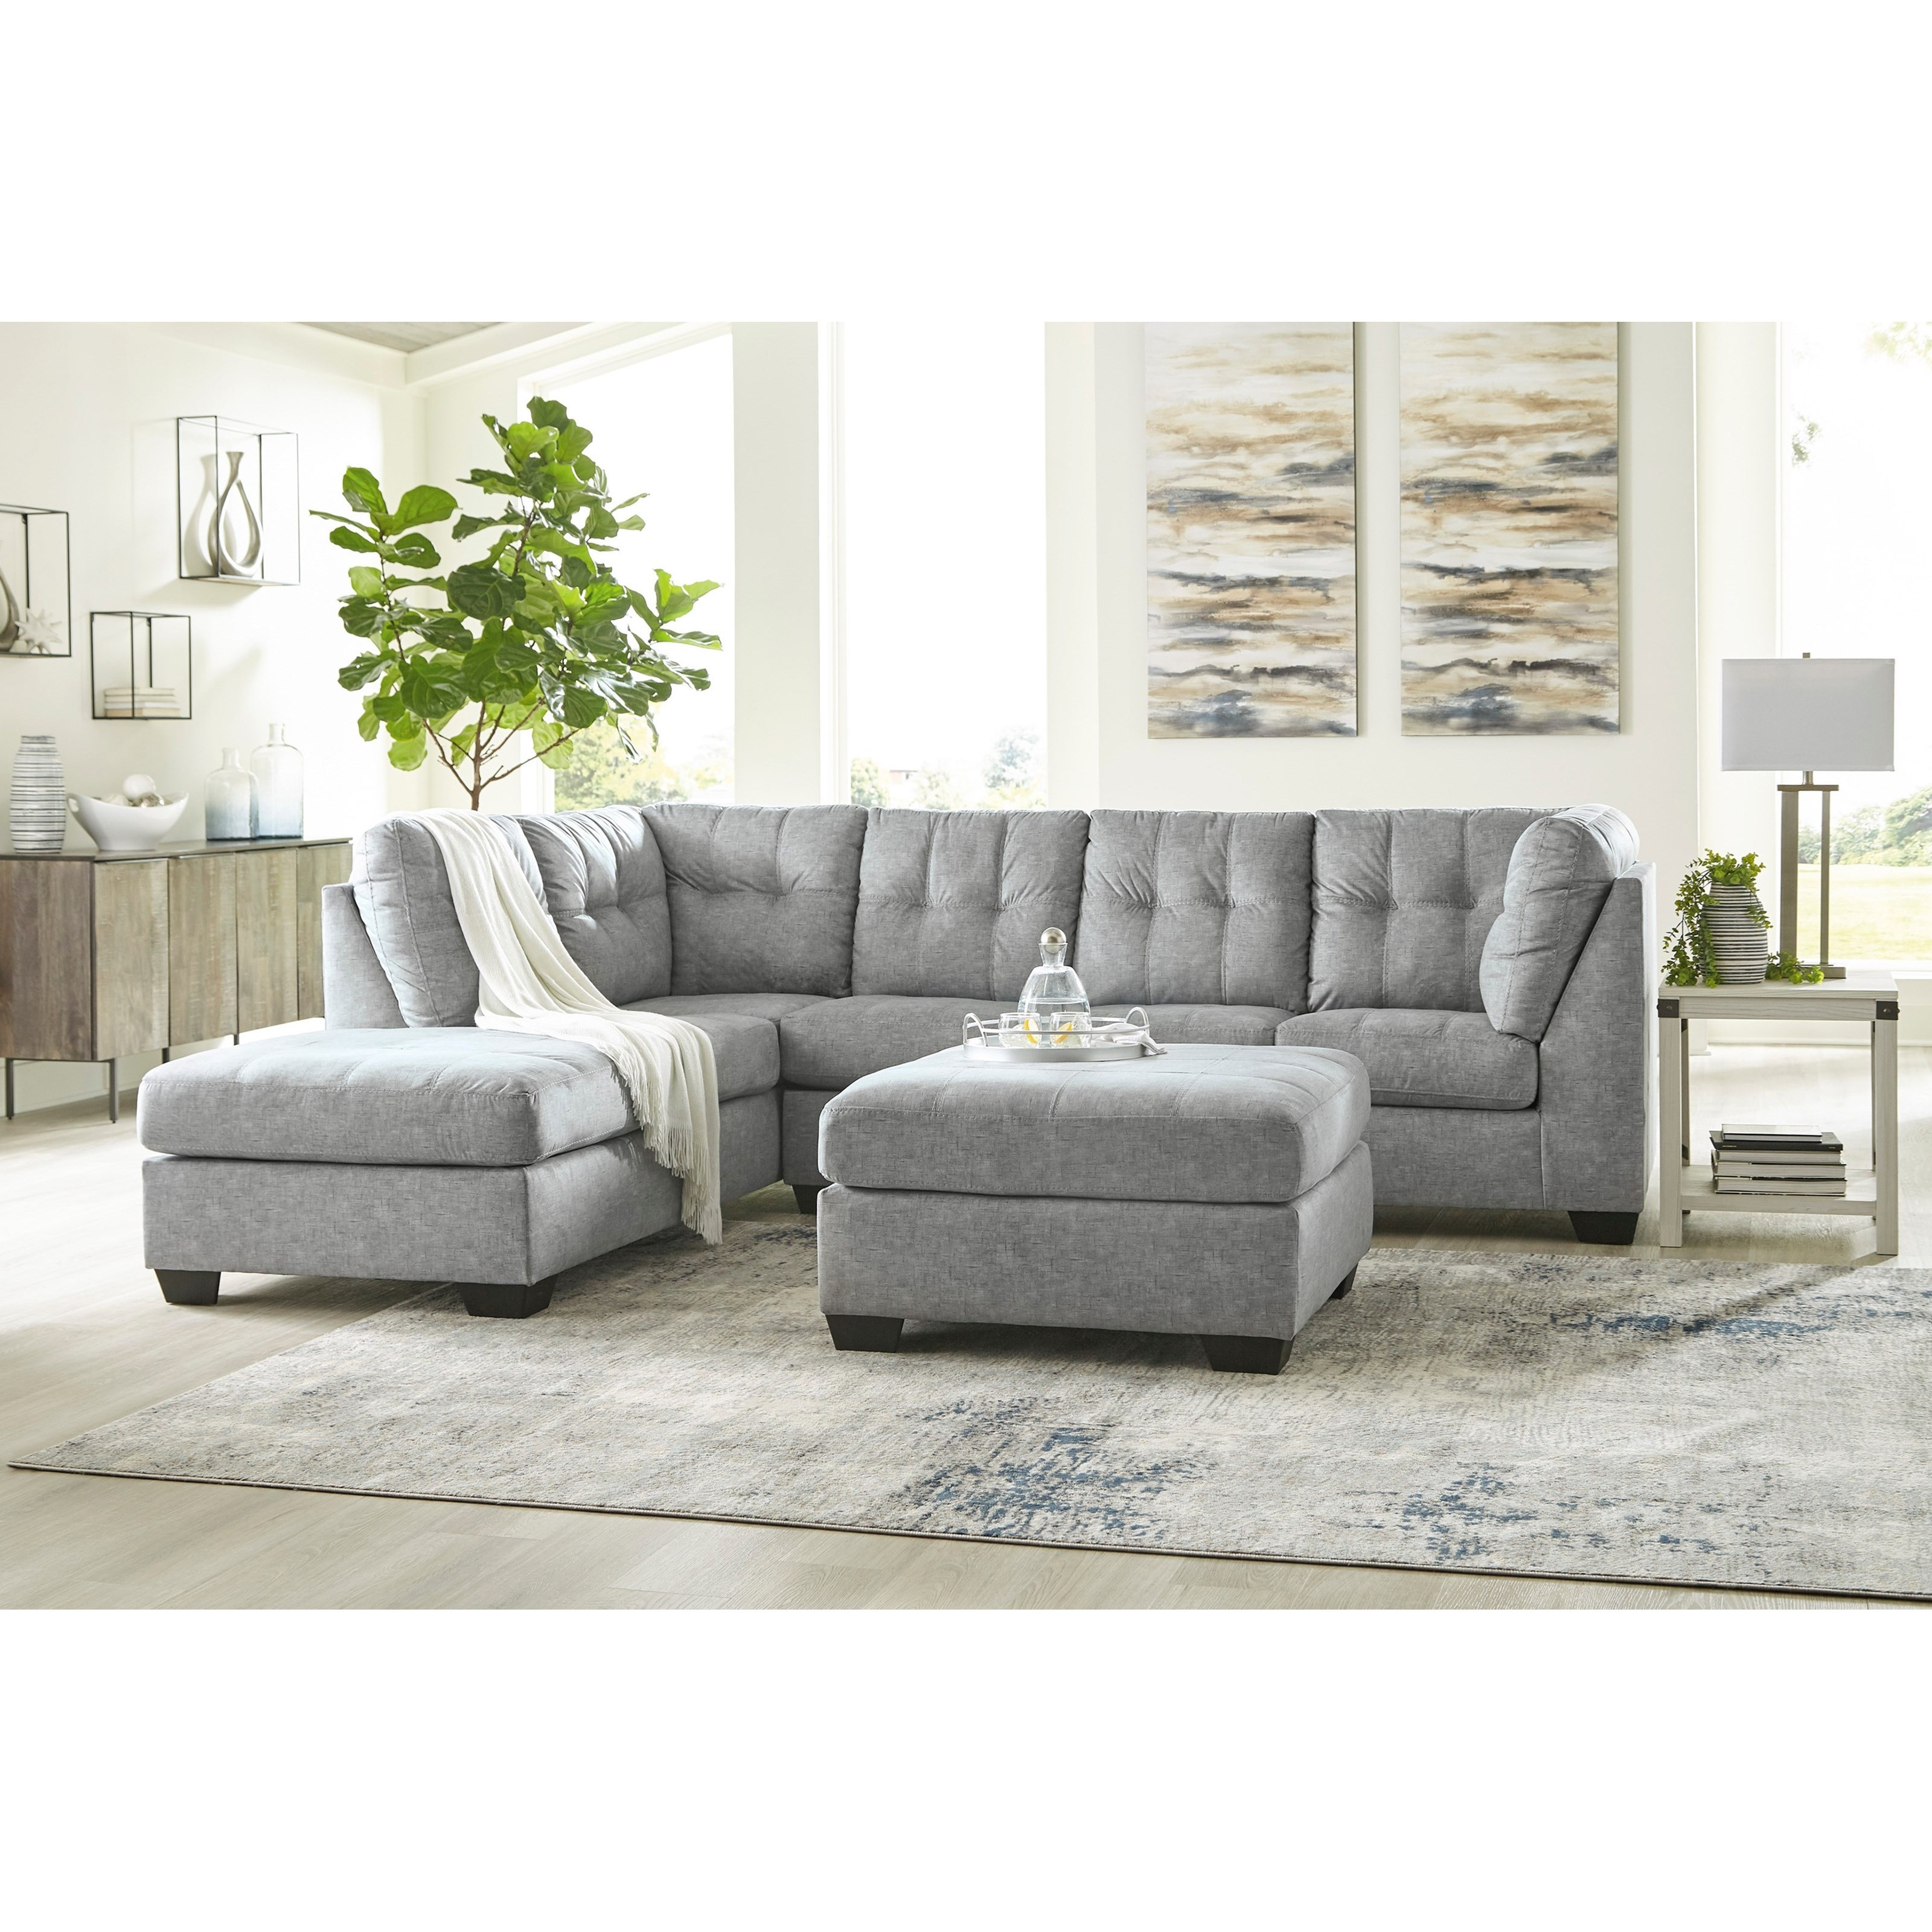 Falkirk Living Room Group by Benchcraft at Gill Brothers Furniture